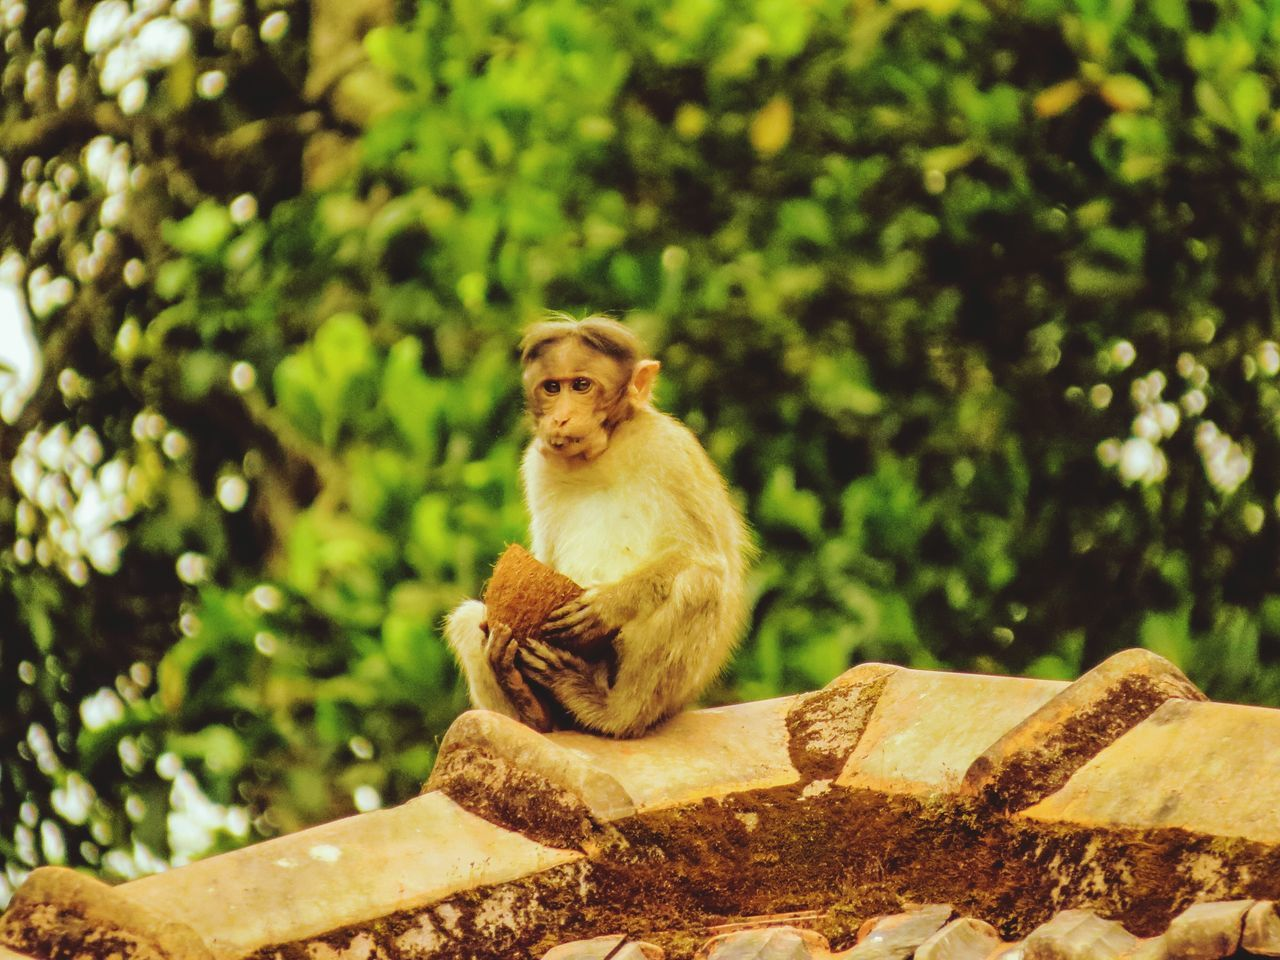 animal themes, animals in the wild, one animal, mammal, day, outdoors, no people, focus on foreground, animal wildlife, monkey, tree, sitting, nature